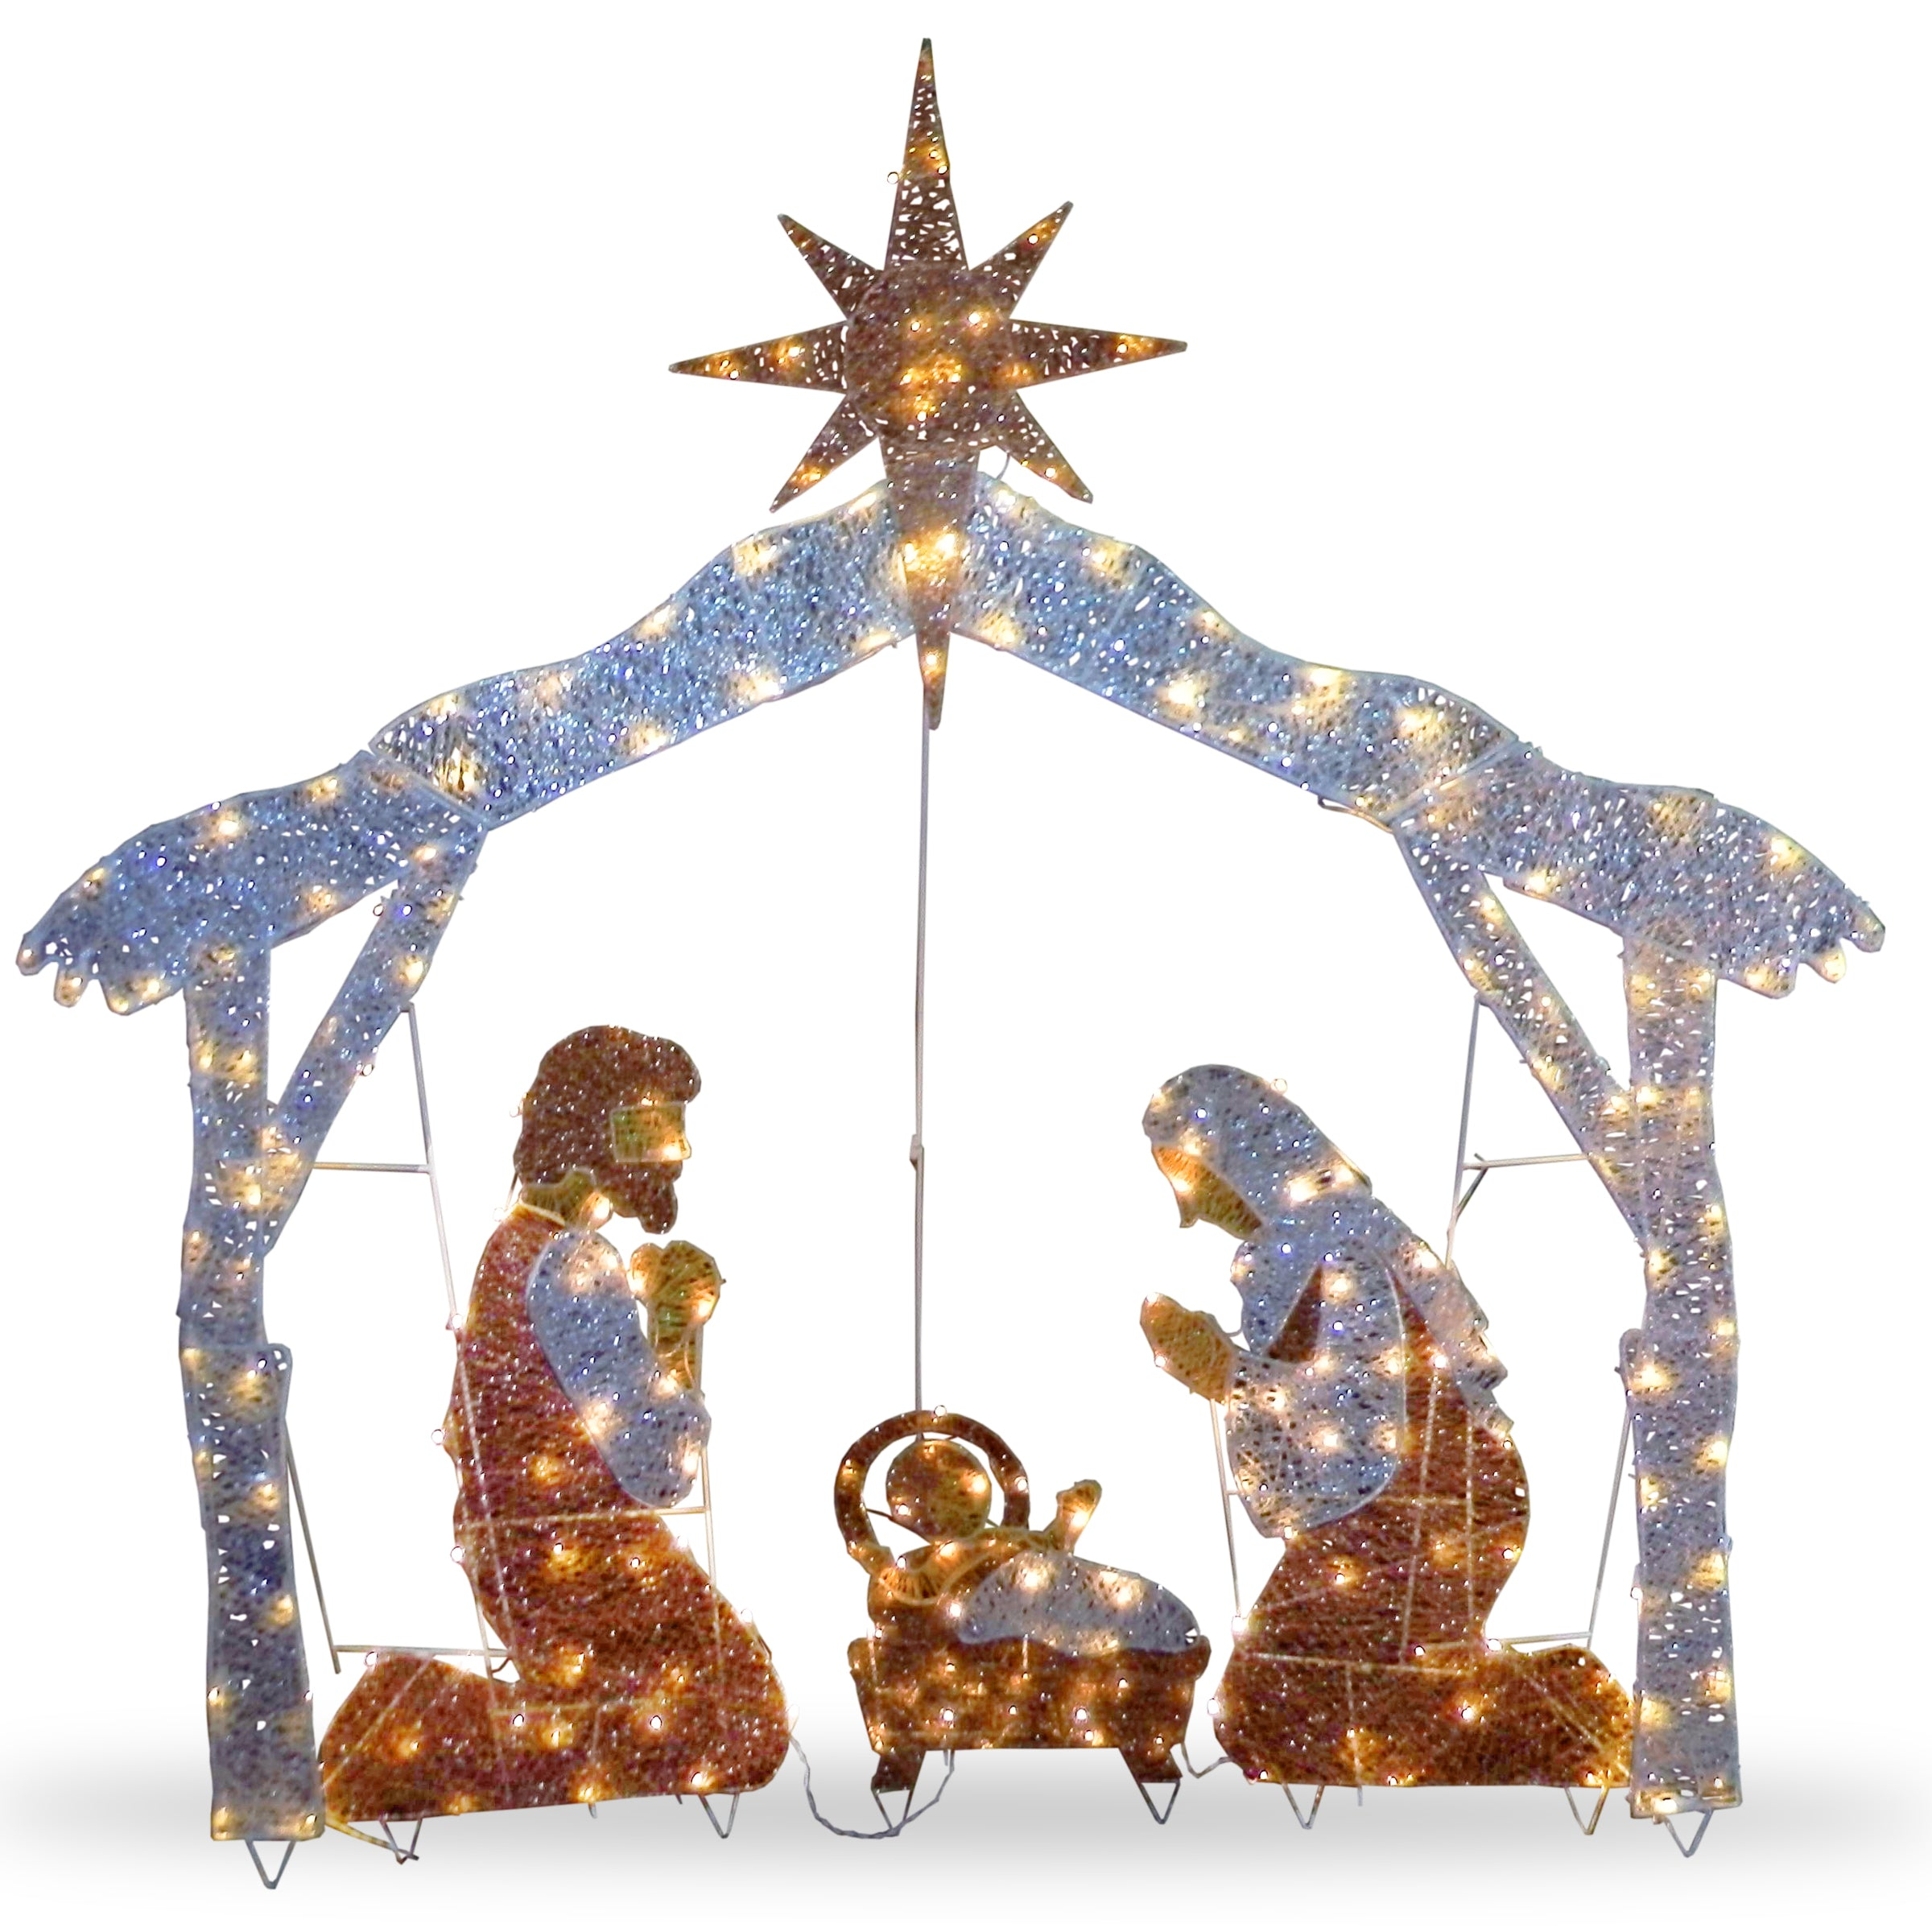 Lighted outdoor nativity set christmas yard decor decor compare national tree df 250001u 72 crystal nativity aloadofball Images